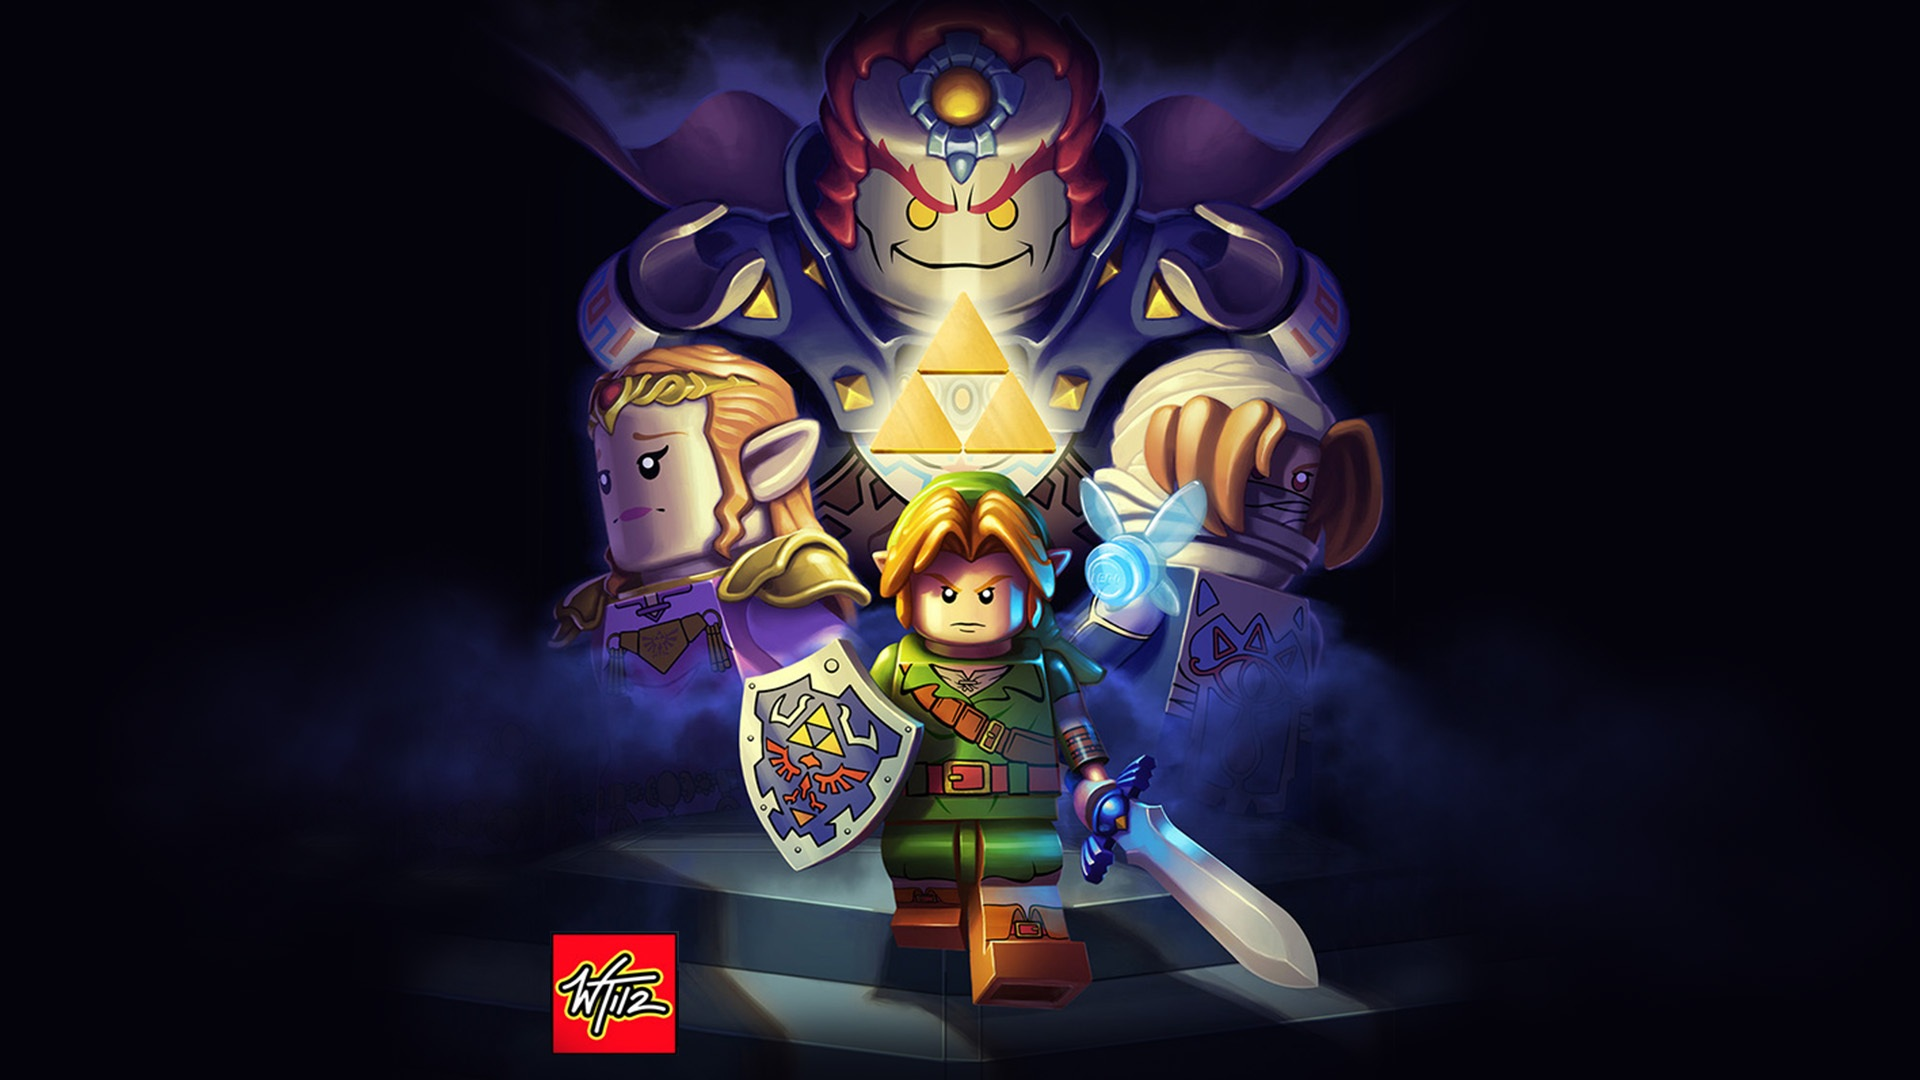 Legend of Zelda Wallpapers HD Wallpapers Backgrounds Images Art 1920x1080